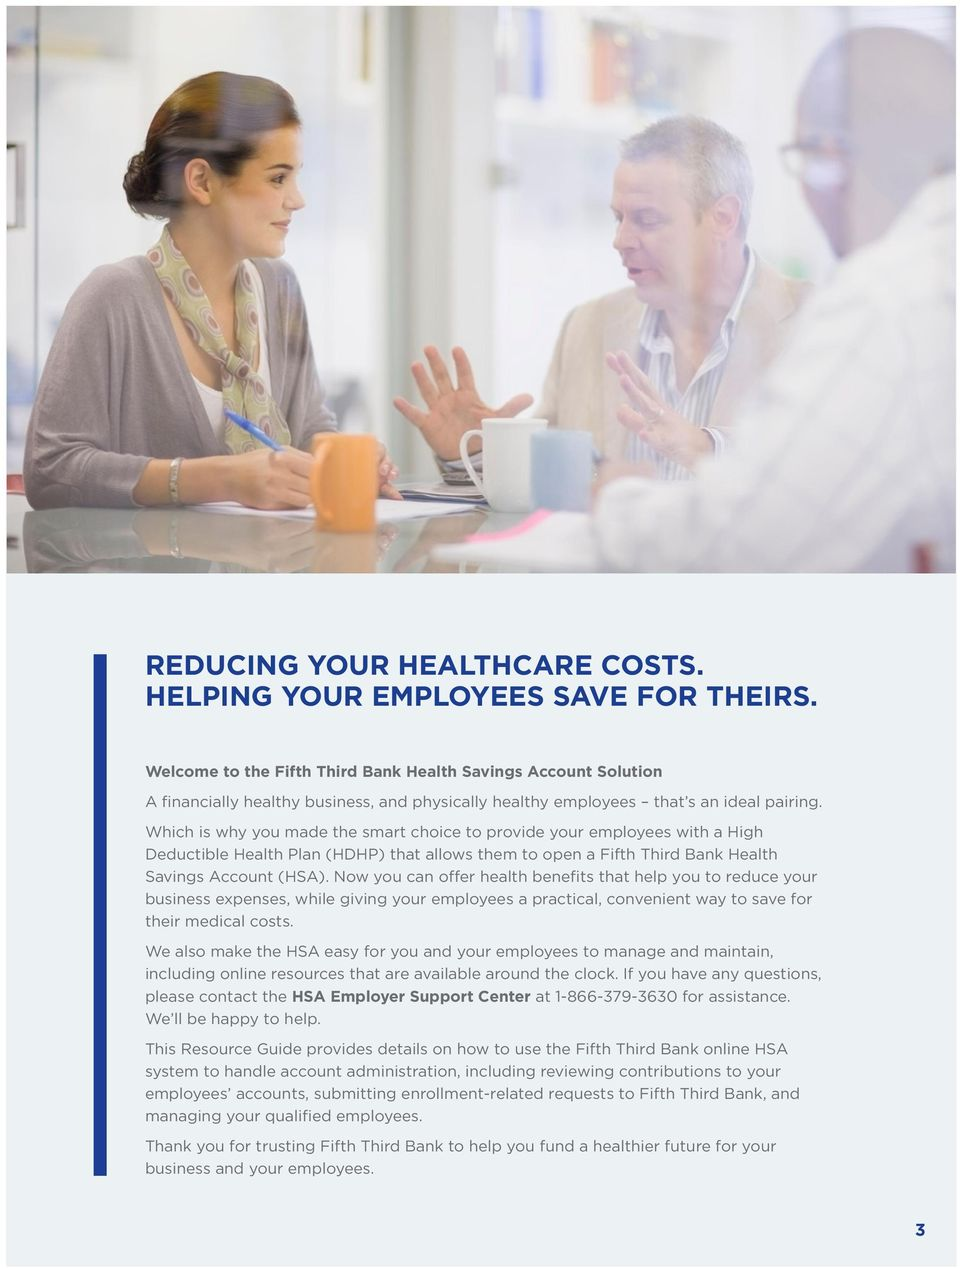 Which is why you made the smart choice to provide your employees with a High Deductible Health Plan (HDHP) that allows them to open a Fifth Third Bank Health Savings Account (HSA).